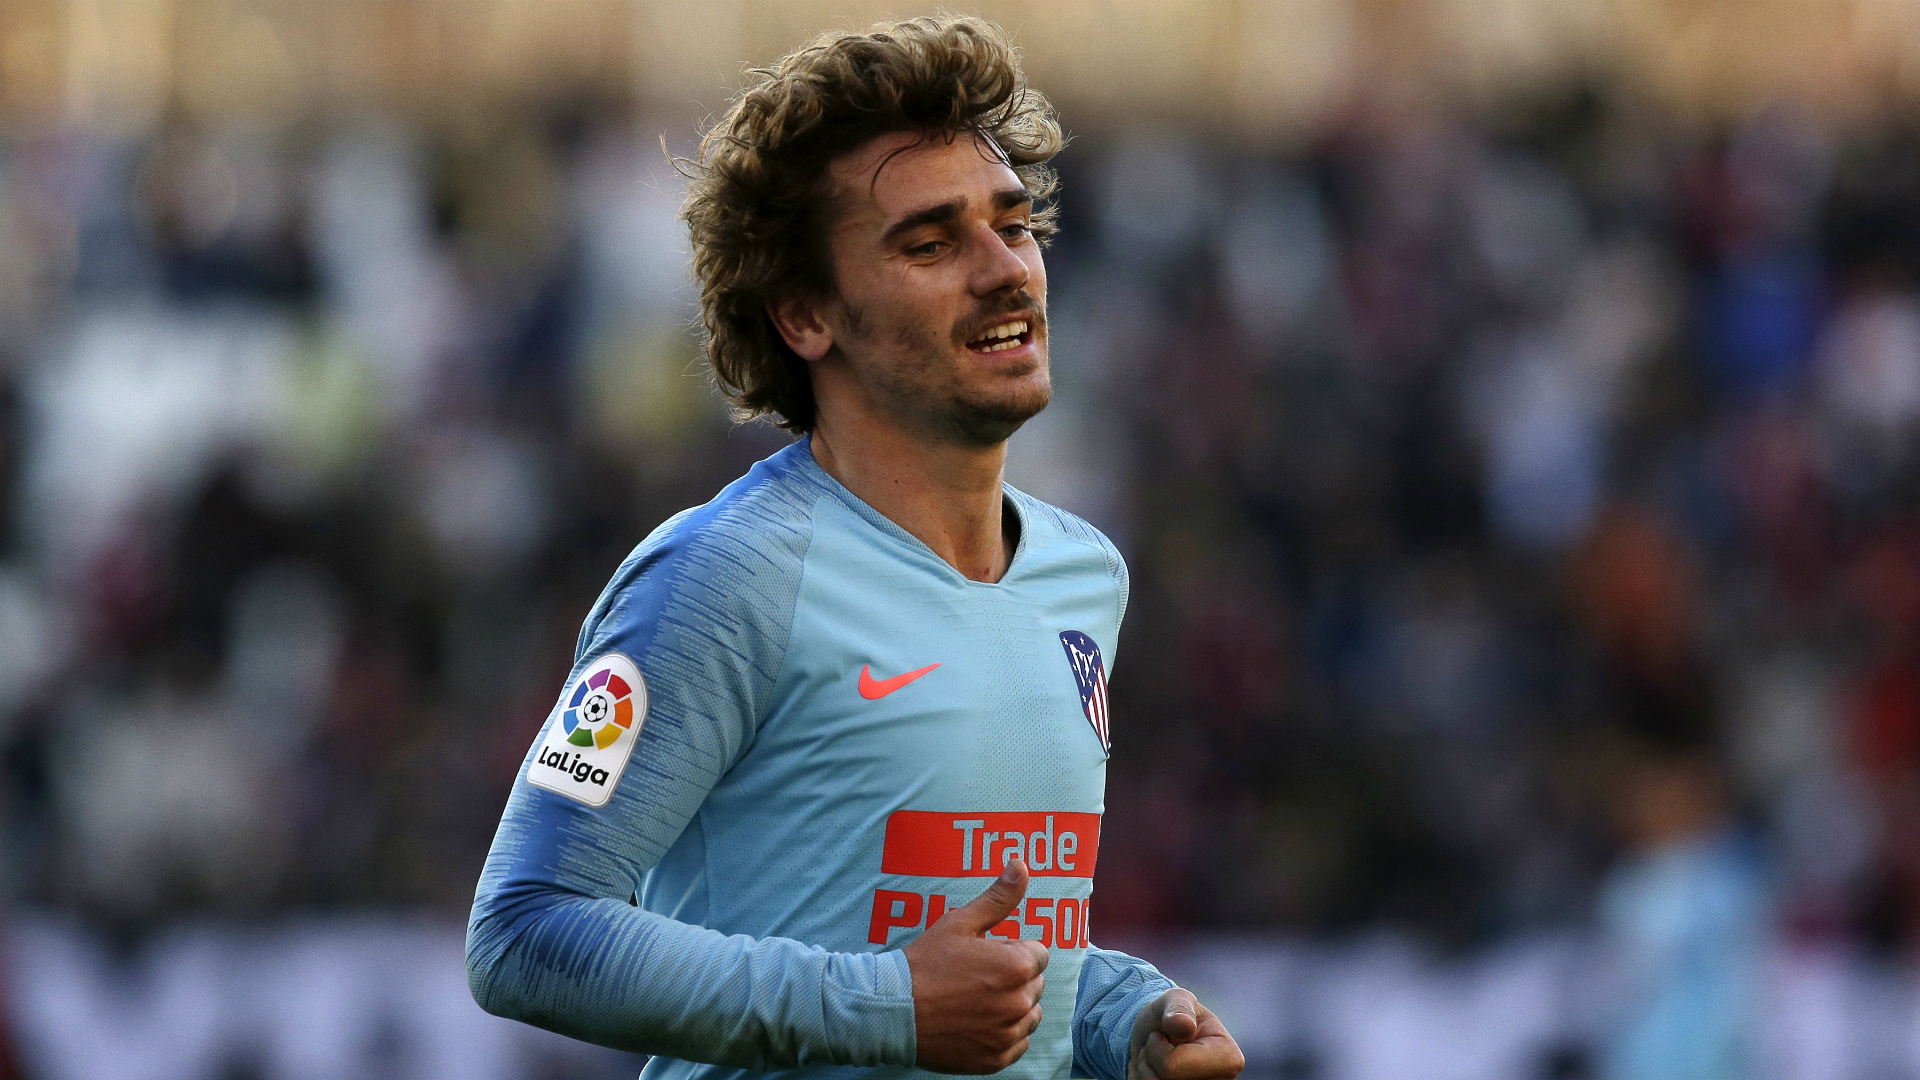 Griezmann Scores as Atletico Madrid Breaks Losing Run Ahead of Juventus